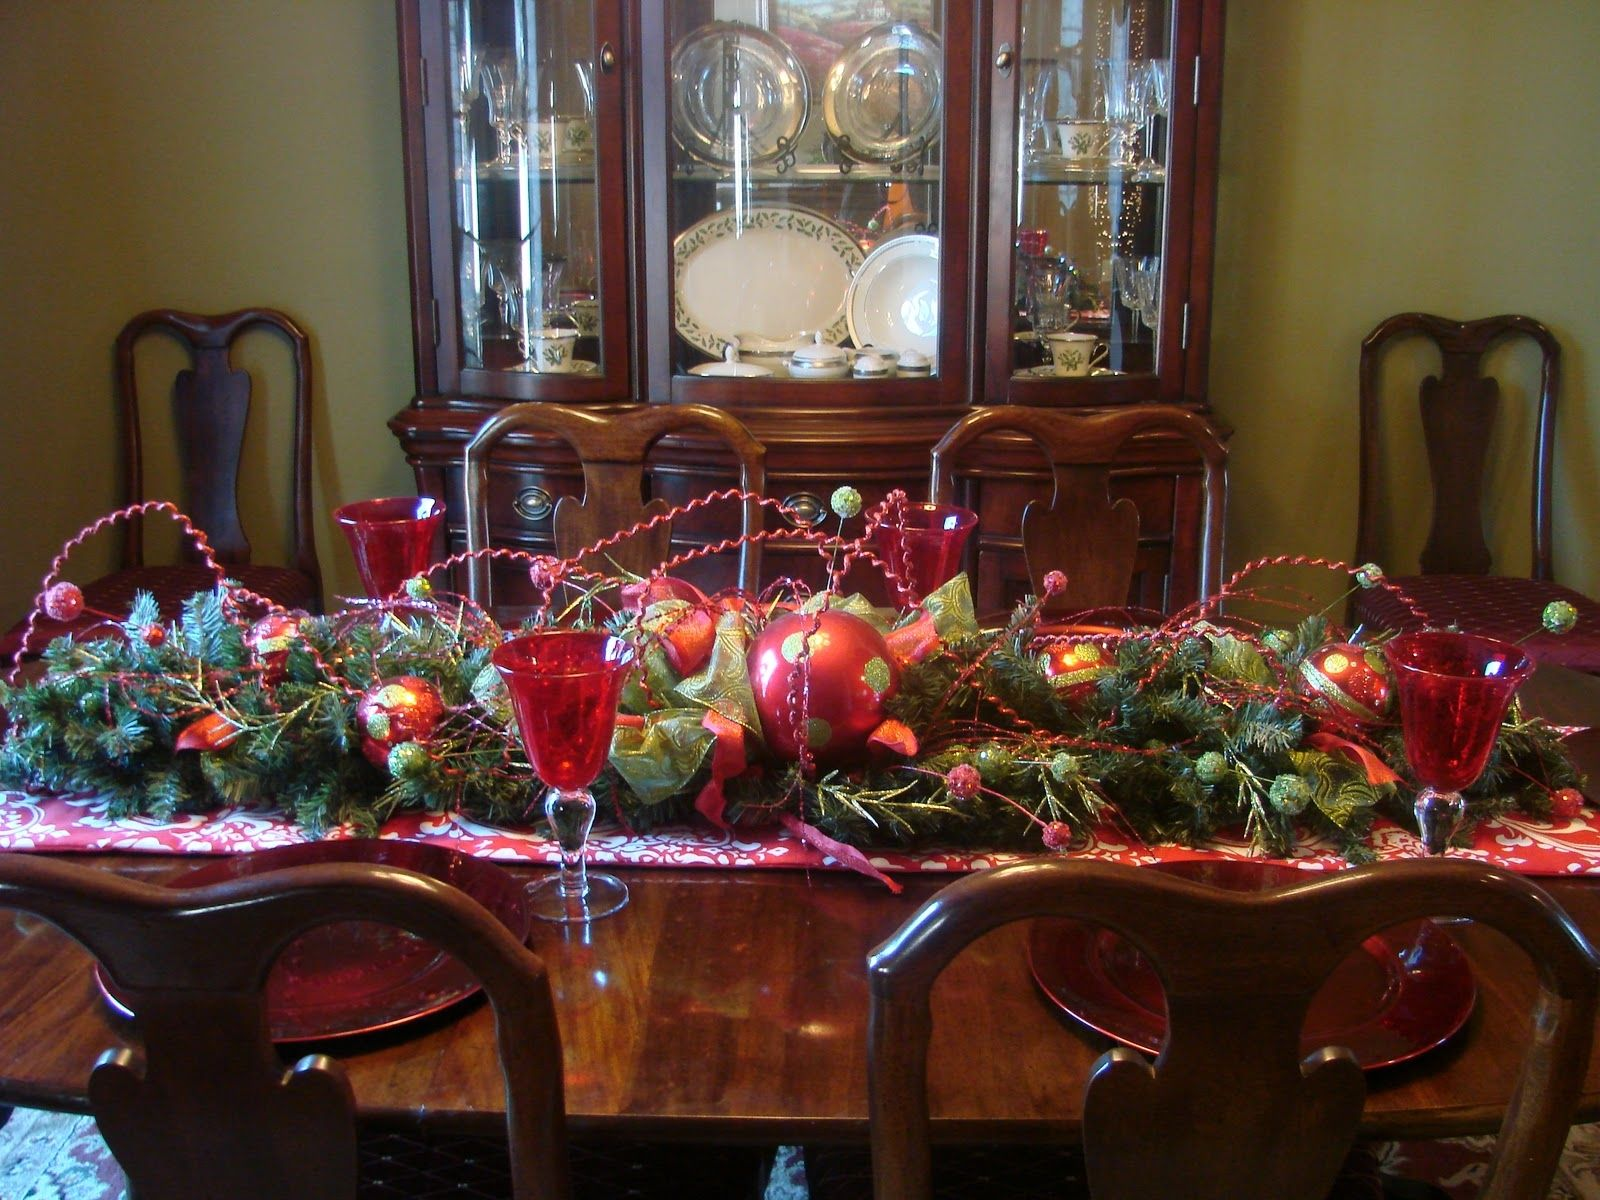 Extraordinary Saddlebrown Rustic Christmas Centerpieces Beautiful Luxurious  Decorations Decoration Ideas Fantastic Dining Table Fruits Bouquet Wooden